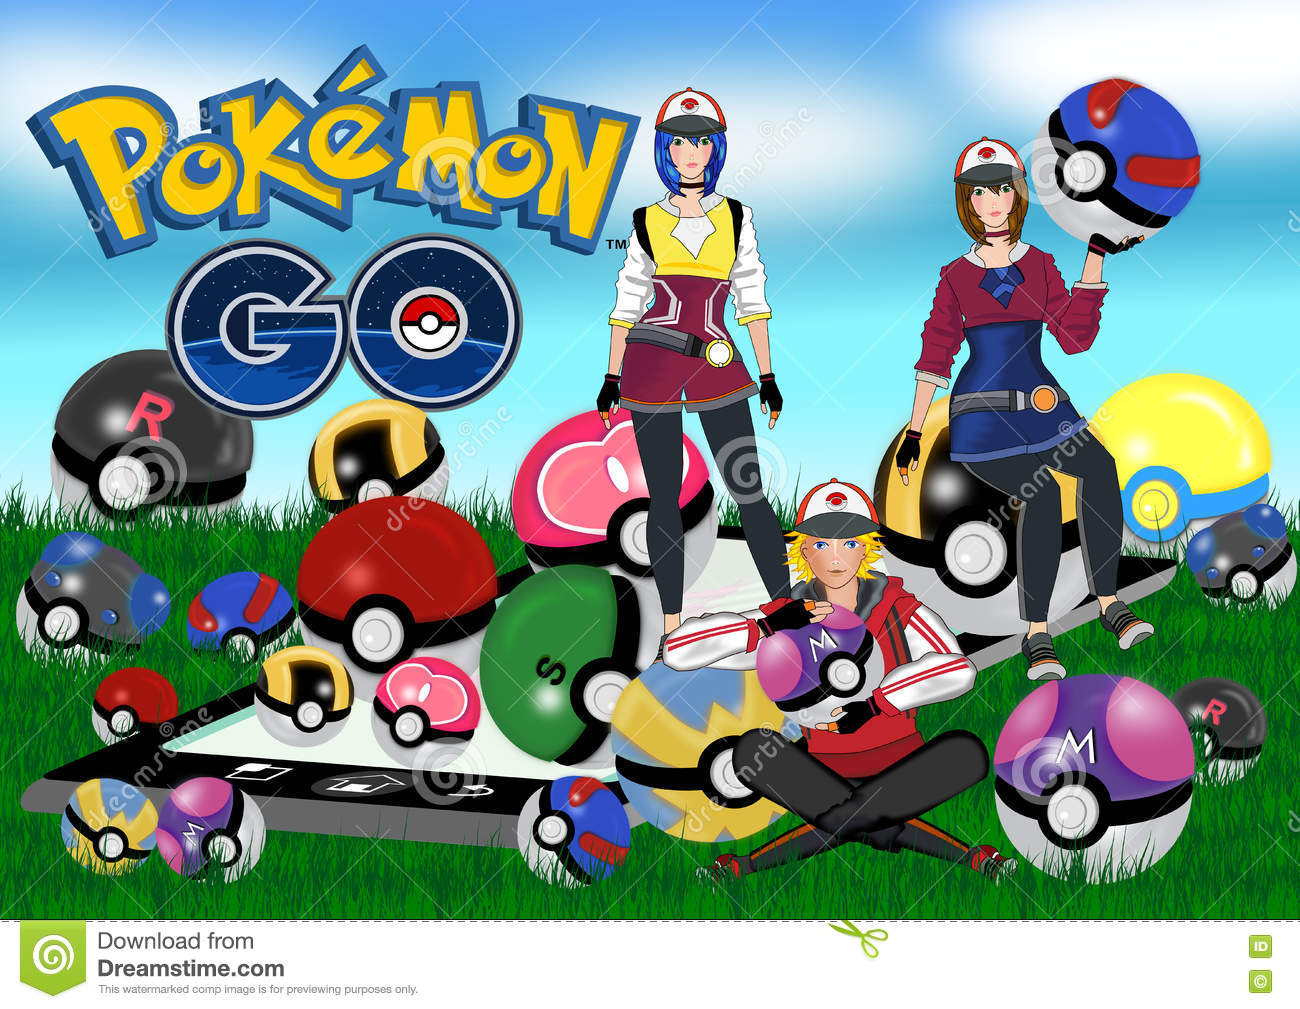 Pokemon go editorial stock photo  Illustration of collection